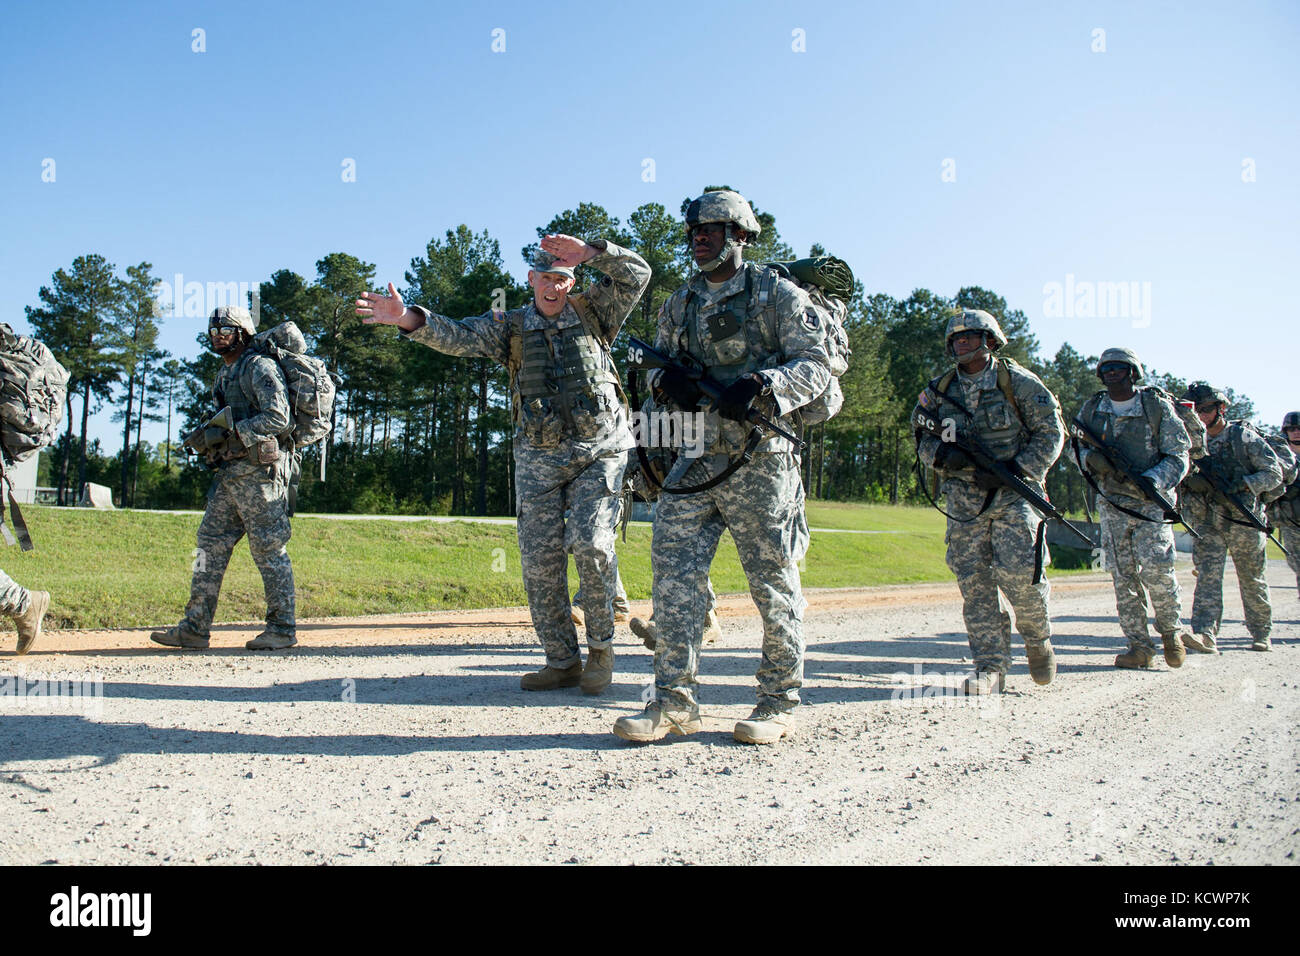 U.S. Soldiers assigned to the Florida Army National Guard conduct a 12 mile ruck march with 218th Regiment (Leadership), South Carolina Army National Guard 12 Bravo Combat Engineer instructors at McCrady Training Center, in Eastover, S.C. April 4, 2016.  The ruck march is part of the combat engineer military occupation specialty retraining for soldiers transitioning to the 12 bravo career field, this class was the first to train women going into the career field at McCrady. (U.S. Air National Guard photo by Tech. Sgt. Jorge Intriago) Stock Photo